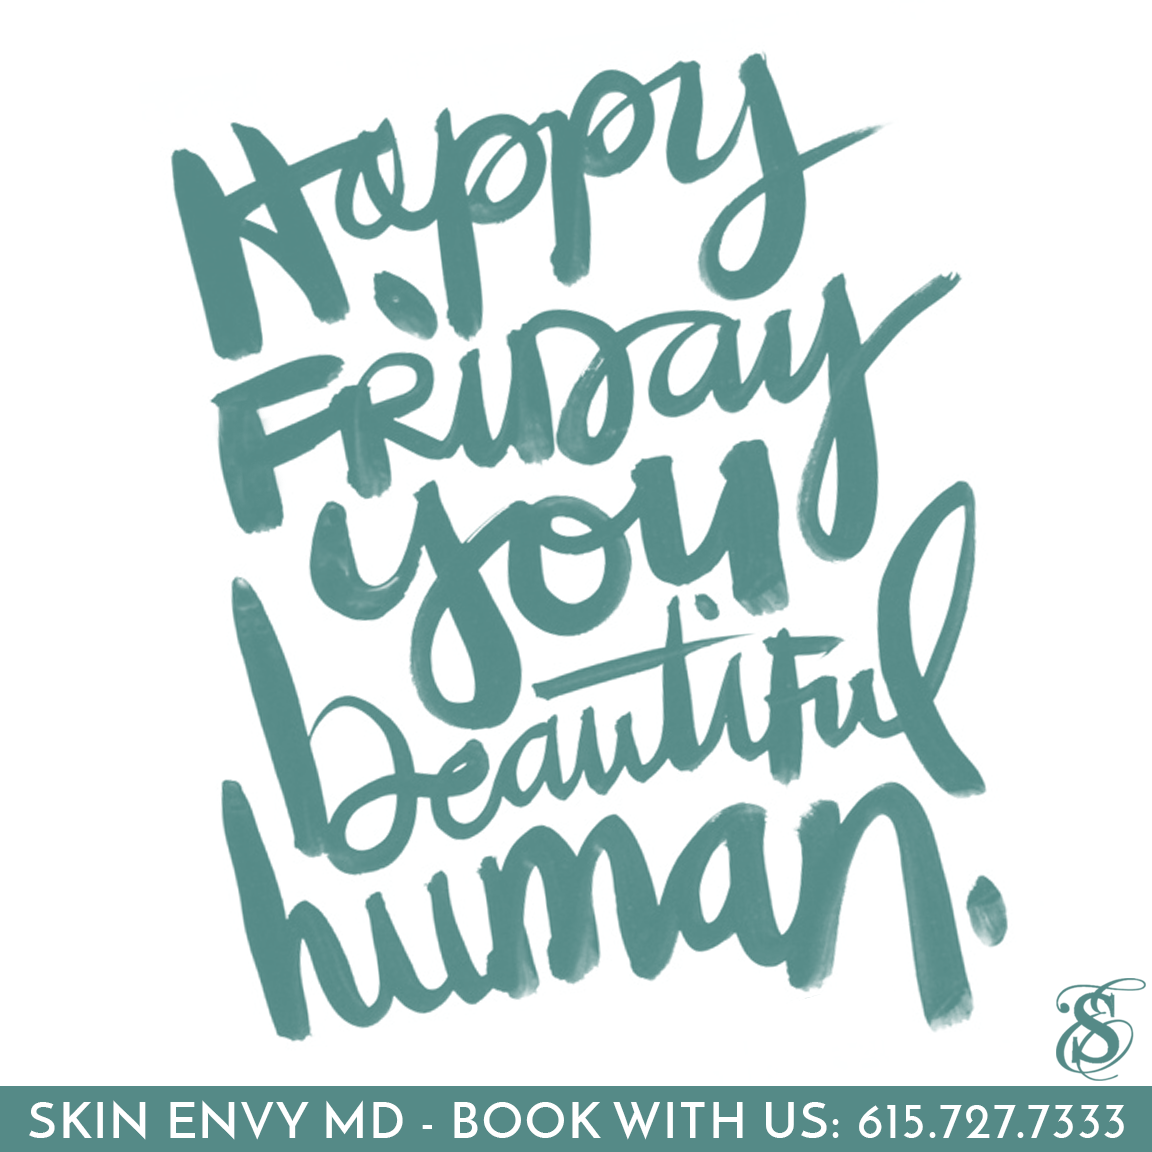 Happy Friday you beautiful human - Botox Dysport Juvederm Restylane by Skin Envy MD Nashville.png